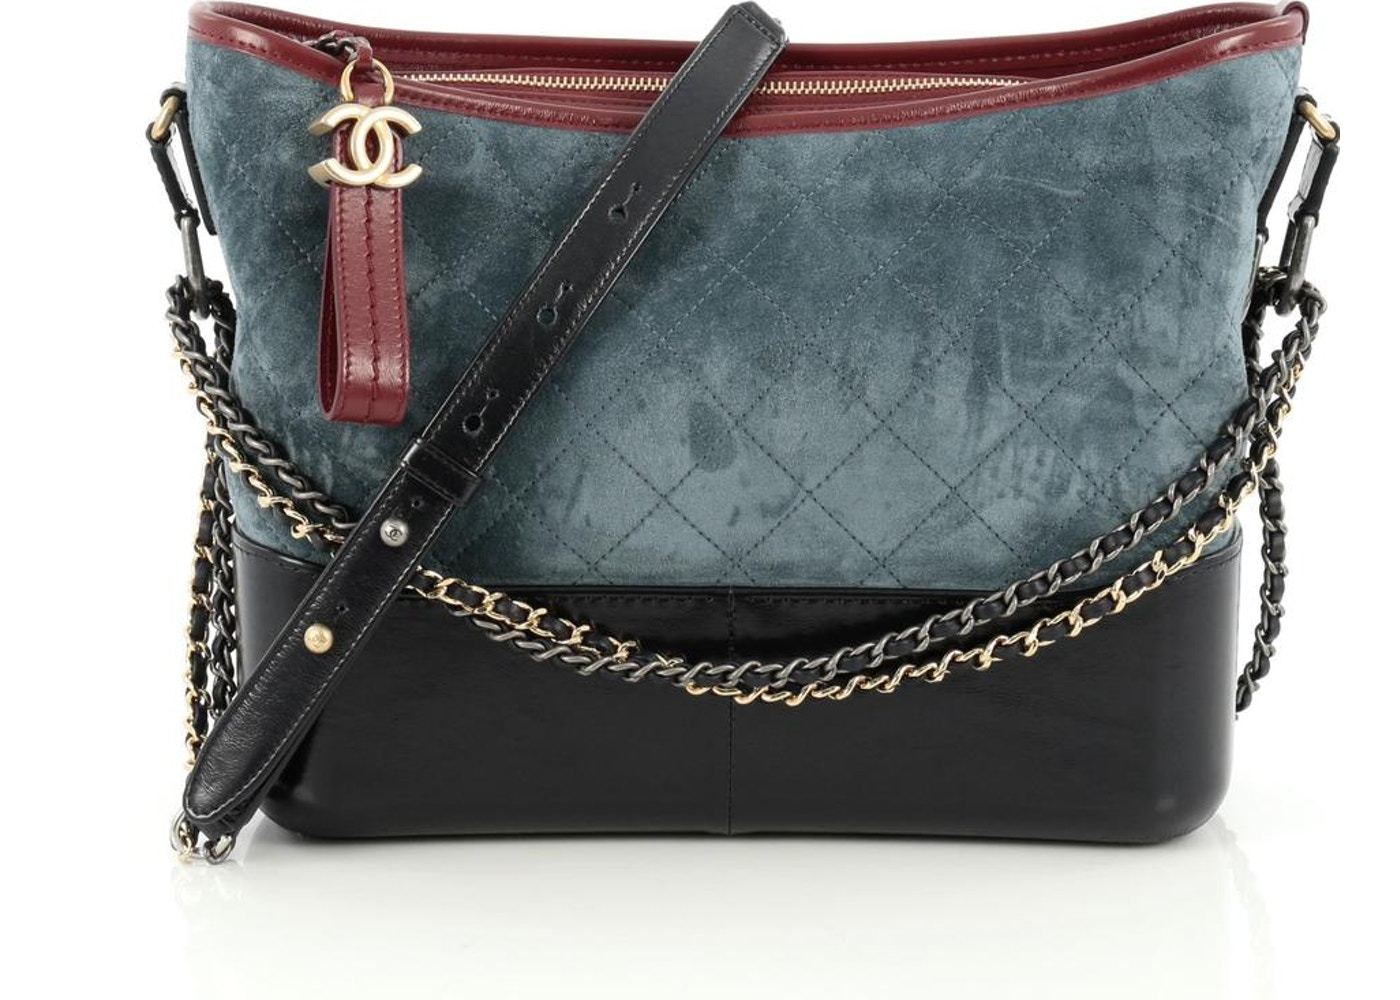 7d8c8245a1dbe7 Chanel Tricolor Hobo Gabrielle Quilted Diamond Medium Blue/Red ...